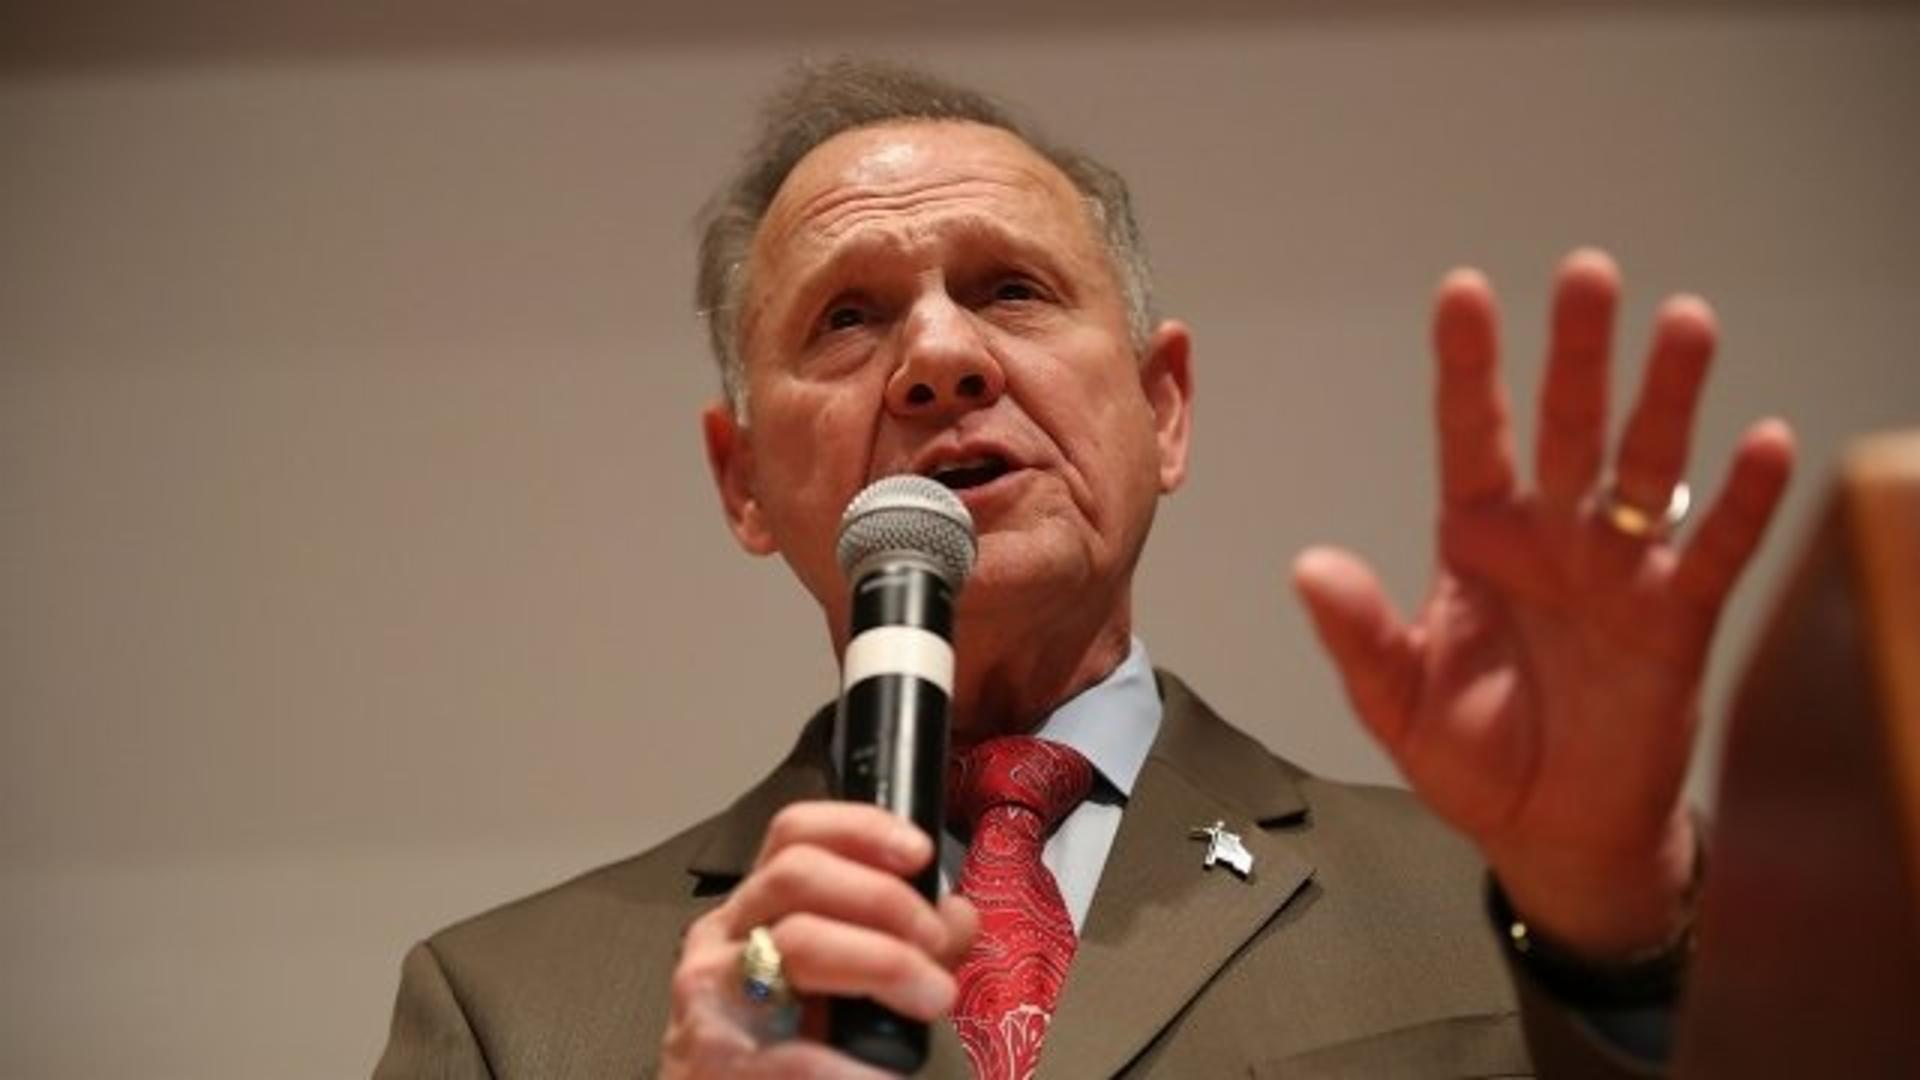 Roy Moore Still Won't Concede Defeat. It's Been A Week Since The Election.